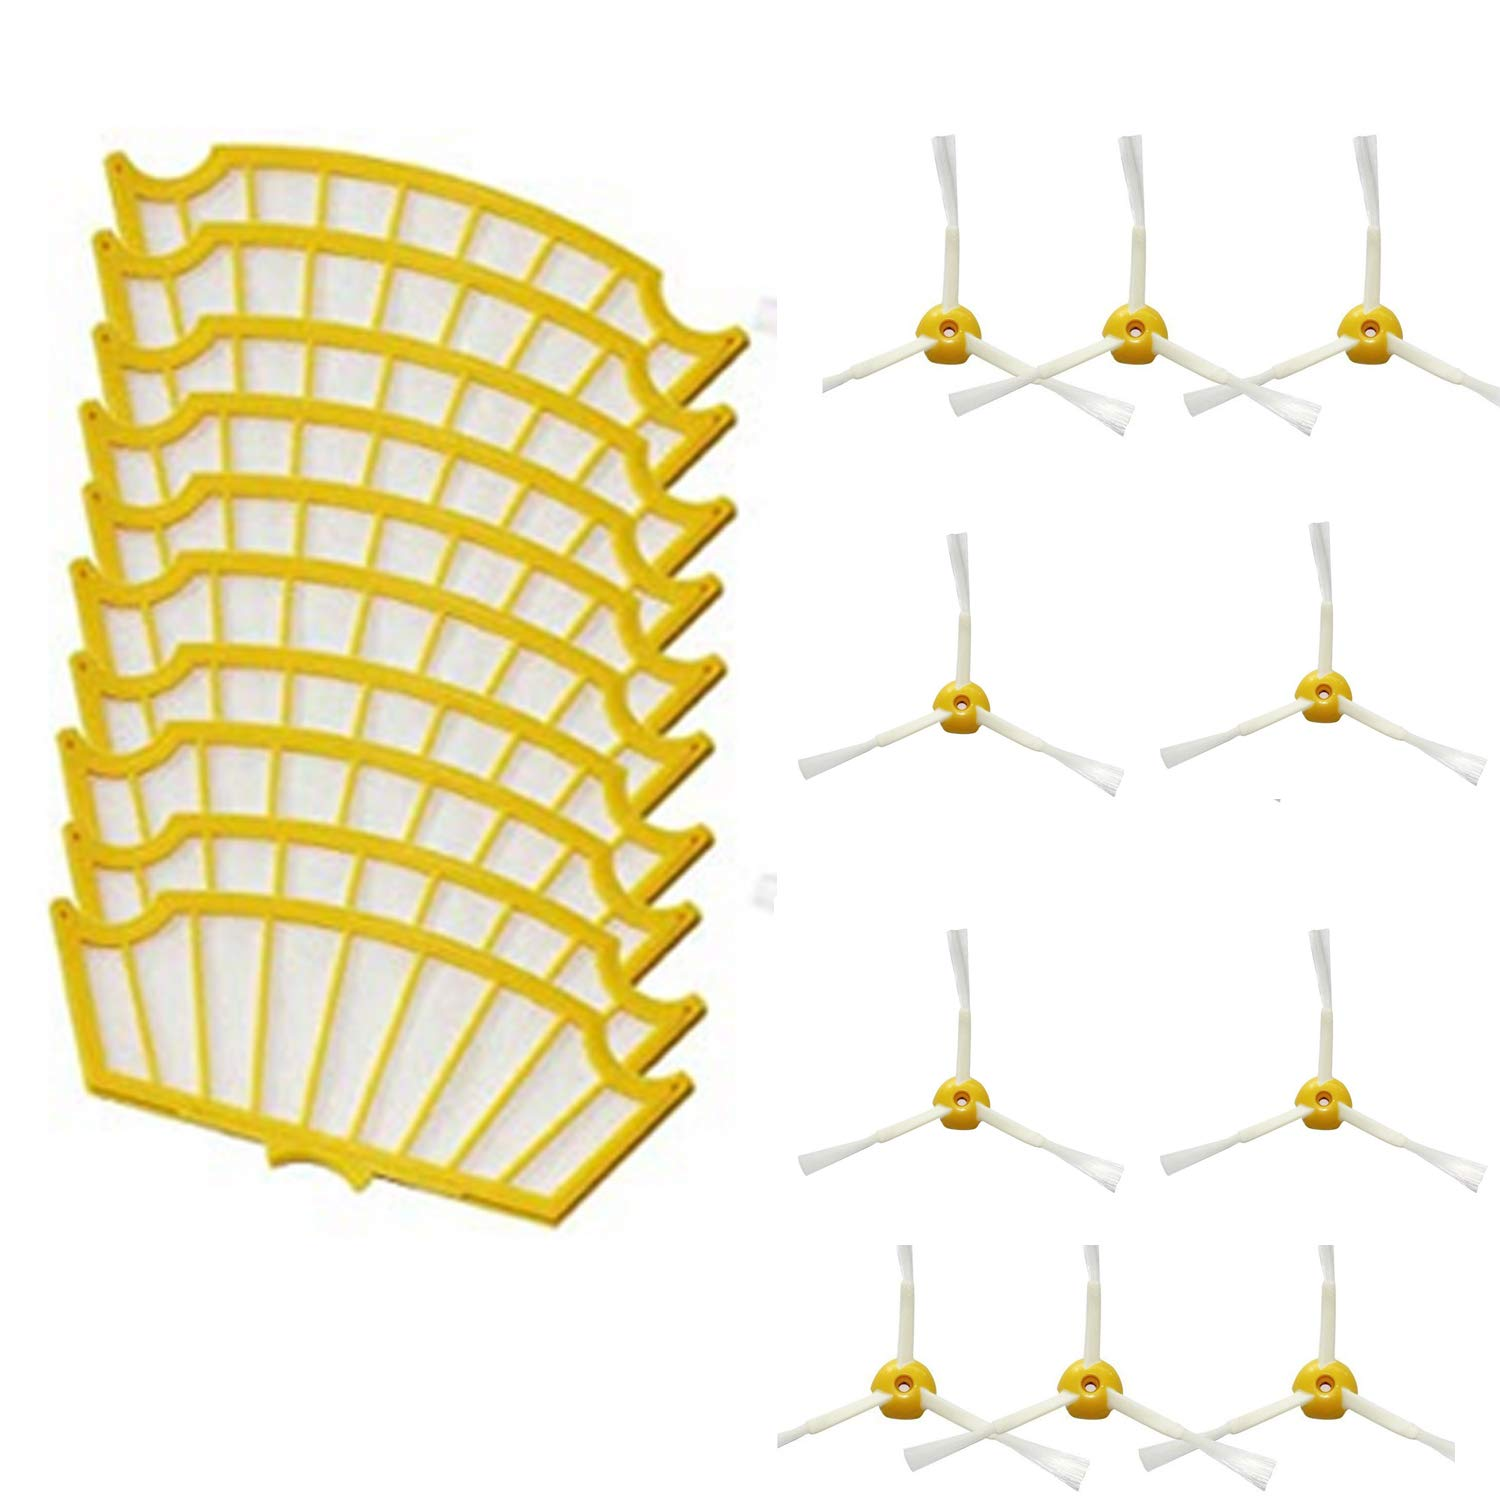 20pcs Filters Spare Kit Includes 10 Side Brushes and 10 Filters Accessory Kit for iRobot Roomba 500 Series Vacuum Cleaner